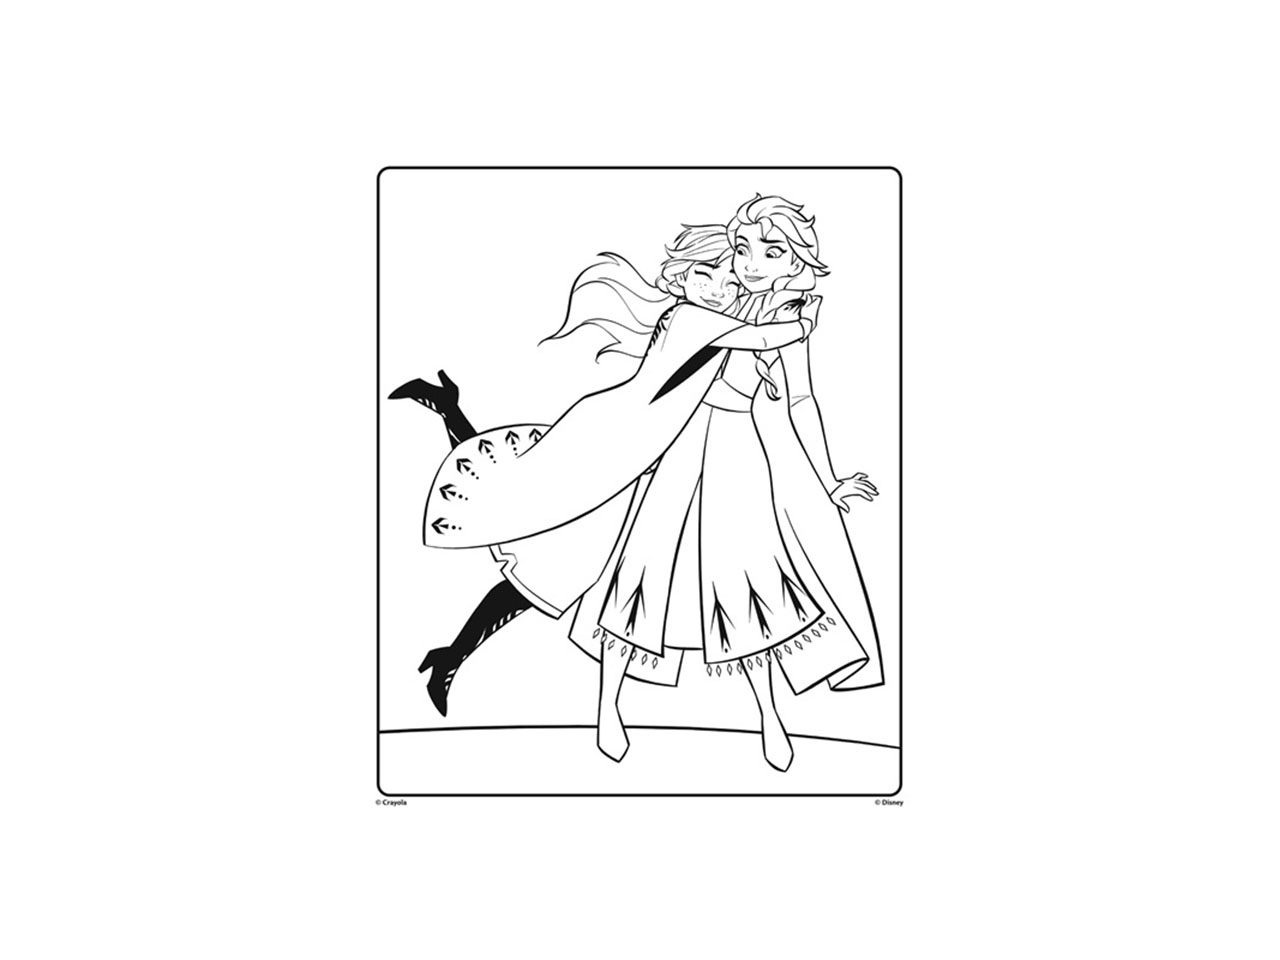 free coloring pages online inspiraled coloring page crayolacom pages online free coloring